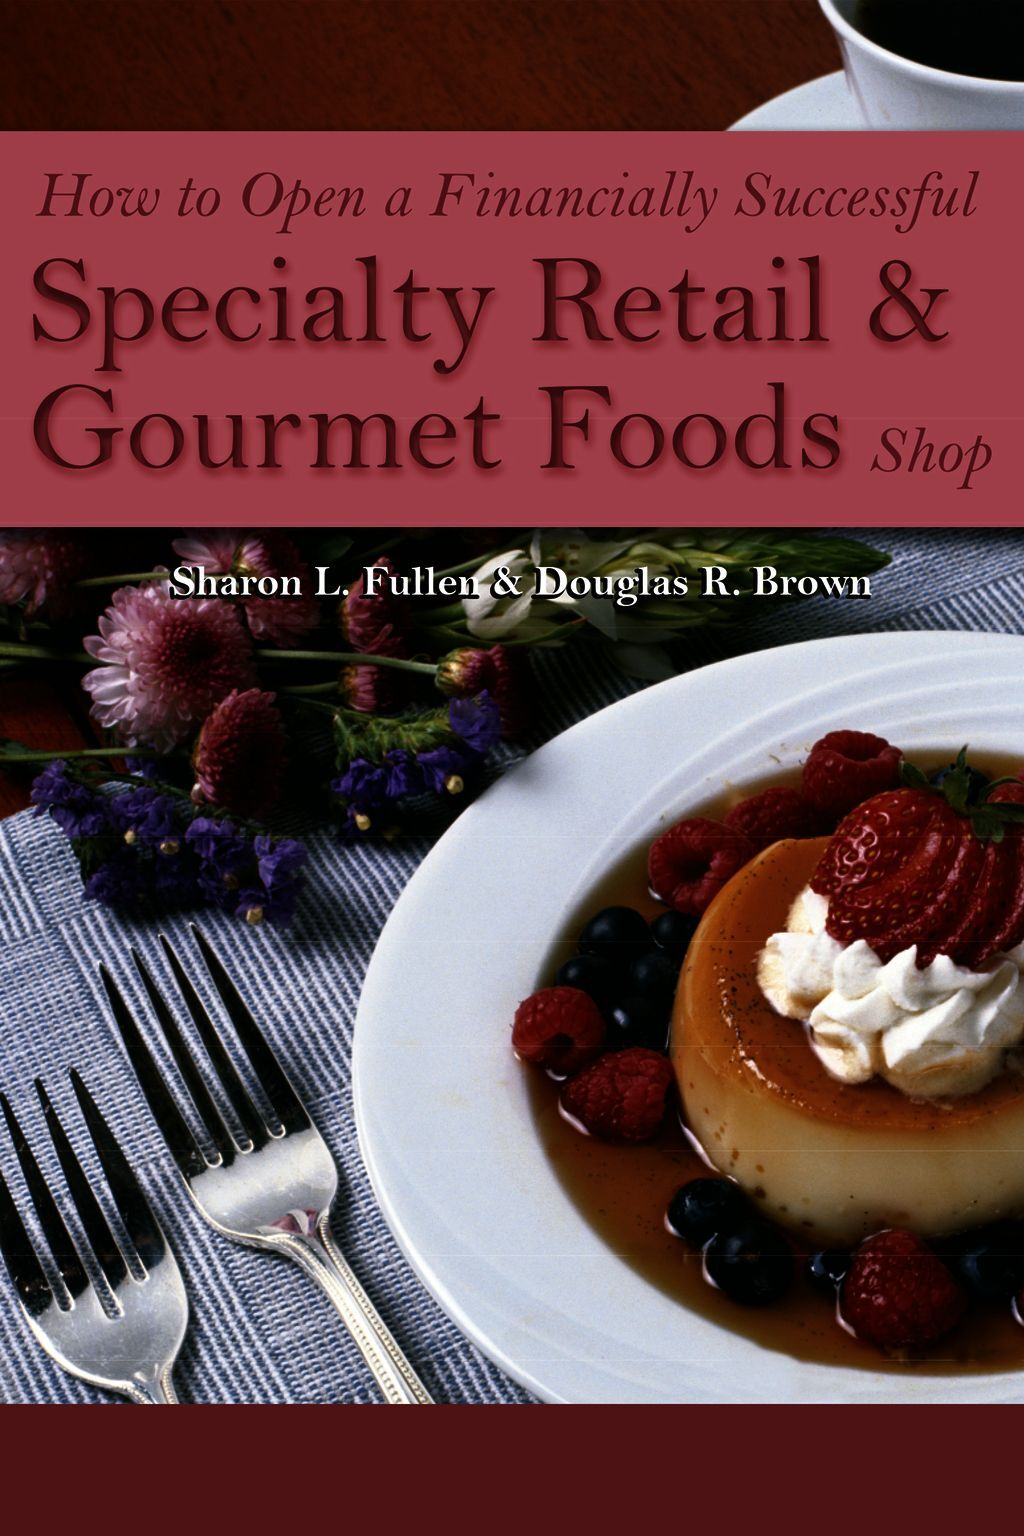 How To Open A Financially Successful Specialty Retail & Gourmet Foods Shop